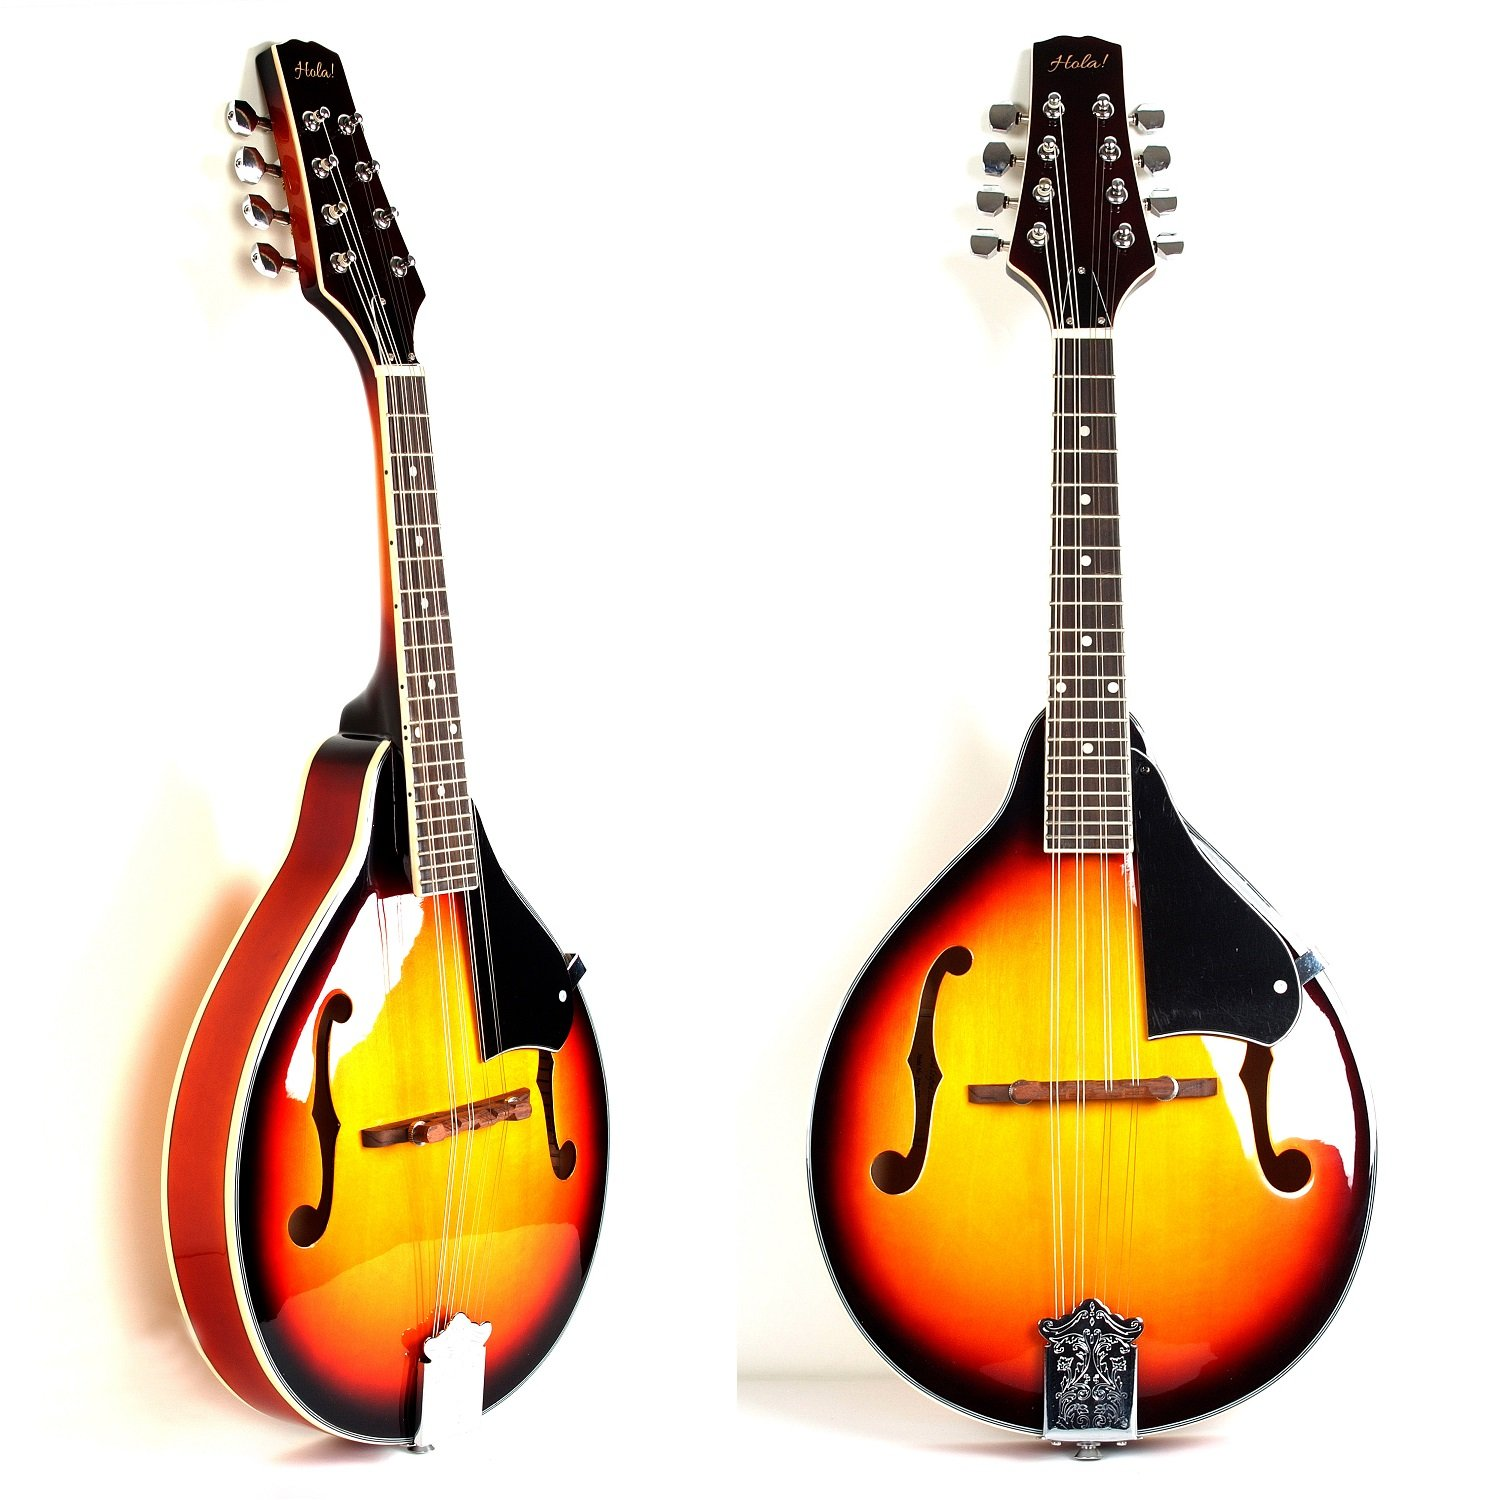 A Style Mandolin Instrument with Adjustable Truss-Rod by Hola! Music (Model HM-3TS) - Glossy Sunburst Finish HM-SB